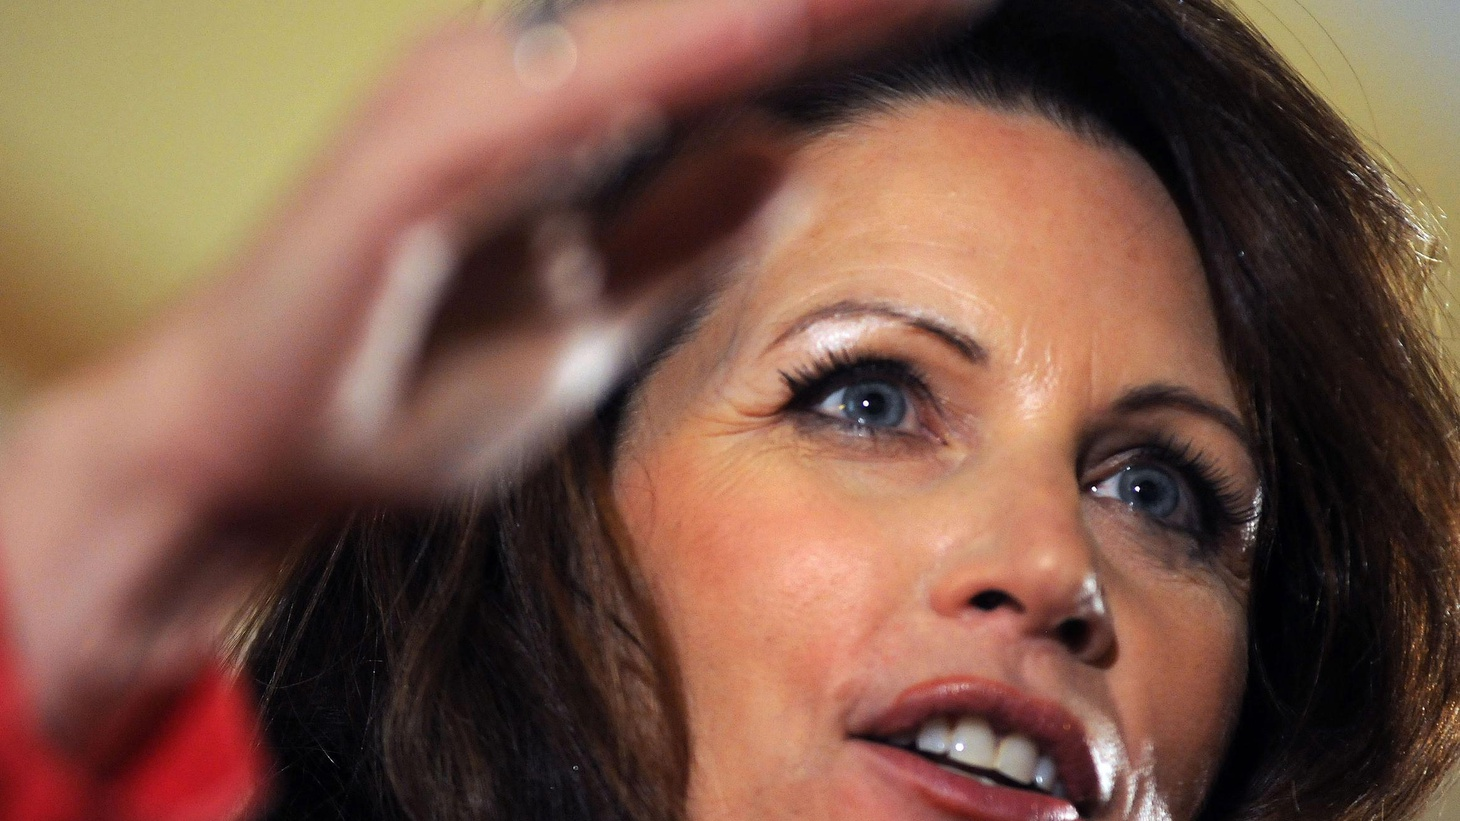 What's the US' endgame in Libya? What's next for nuclear energy in the US? Michele Bachmann, GOP presidential contender? And new housing sales hit record lows.